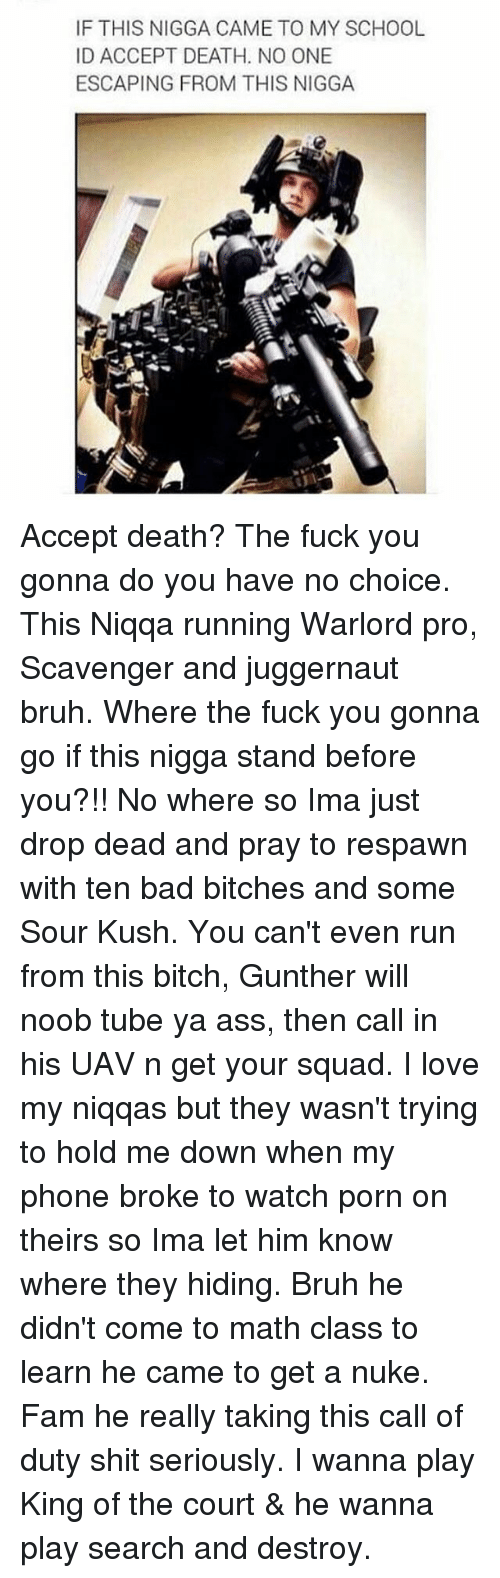 noobness: IF THIS NIGGA CAME TO MY SCHOOL  ID ACCEPT DEATH. NO ONE  ESCAPING FROM THIS NIGGA Accept death? The fuck you gonna do you have no choice. This Niqqa running Warlord pro, Scavenger and juggernaut bruh. Where the fuck you gonna go if this nigga stand before you?!! No where so Ima just drop dead and pray to respawn with ten bad bitches and some Sour Kush. You can't even run from this bitch, Gunther will noob tube ya ass, then call in his UAV n get your squad. I love my niqqas but they wasn't trying to hold me down when my phone broke to watch porn on theirs so Ima let him know where they hiding. Bruh he didn't come to math class to learn he came to get a nuke. Fam he really taking this call of duty shit seriously. I wanna play King of the court & he wanna play search and destroy.